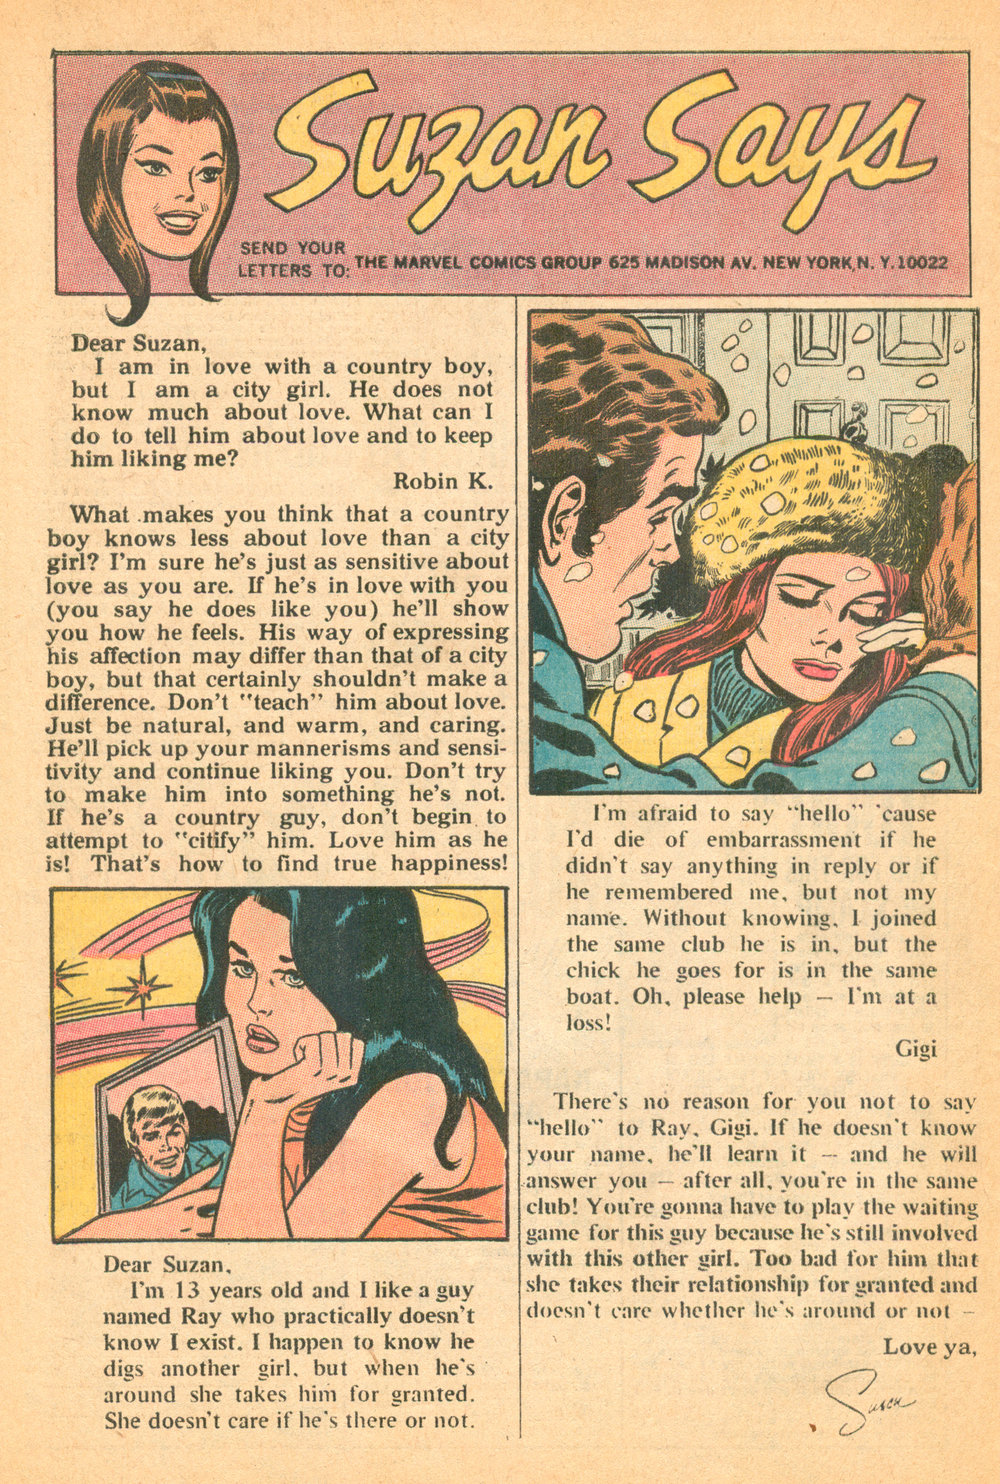 """Suzan Says""  Our Love Story  #10 (April  1971), Script: Suzan Lane Loeb, Marvel Comics."